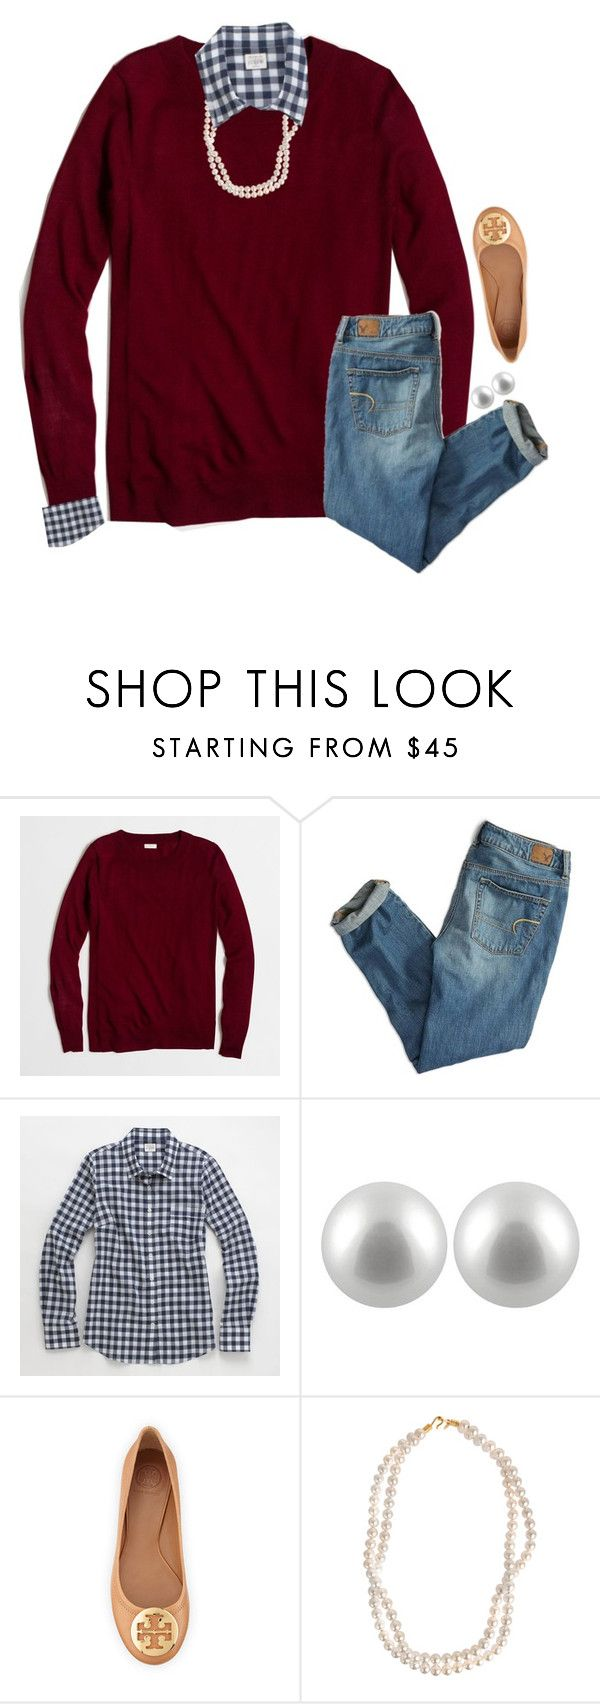 """Thanks for 700!!"" by preppy-ginger-girl ❤ liked on Polyvore featuring J.Crew, American Eagle Outfitters, Splendid Pearls, Tory Burch and STELLA McCARTNEY"